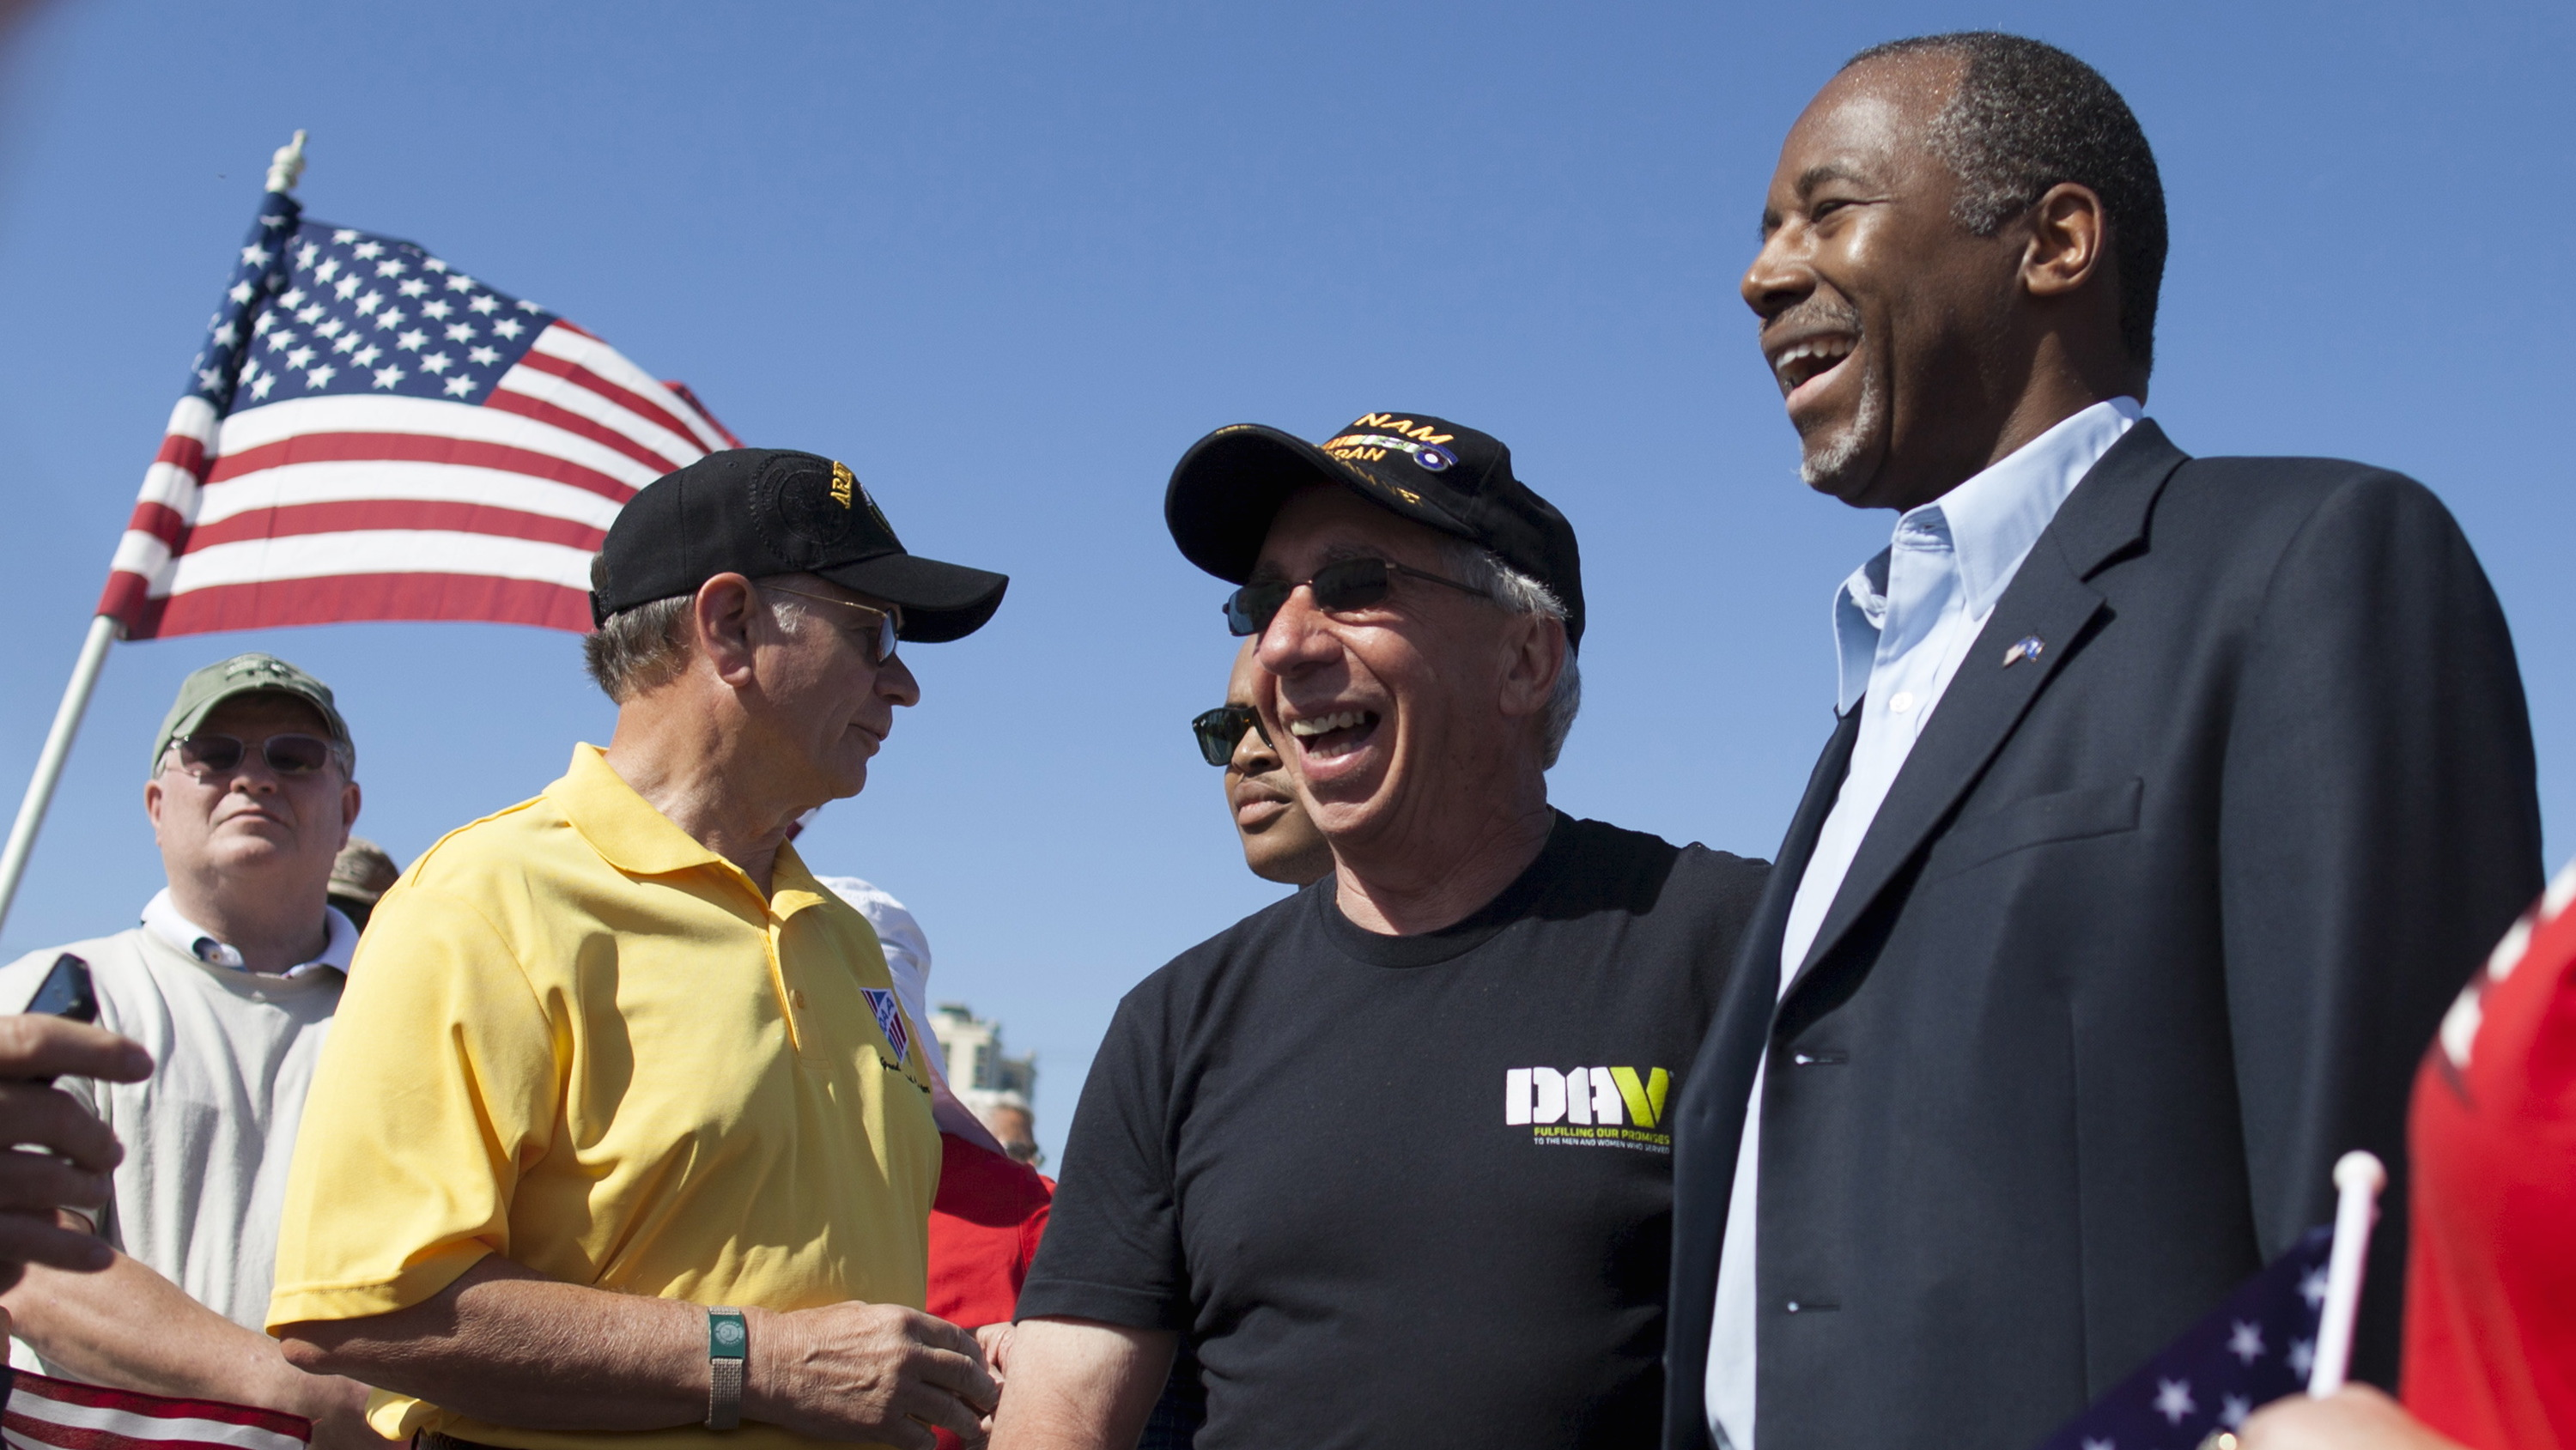 Republican presidential candidate Ben Carson poses for photos with veterans after a march by veterans to mark Memorial Day, as part of a election campaign stop in Myrtle Beach